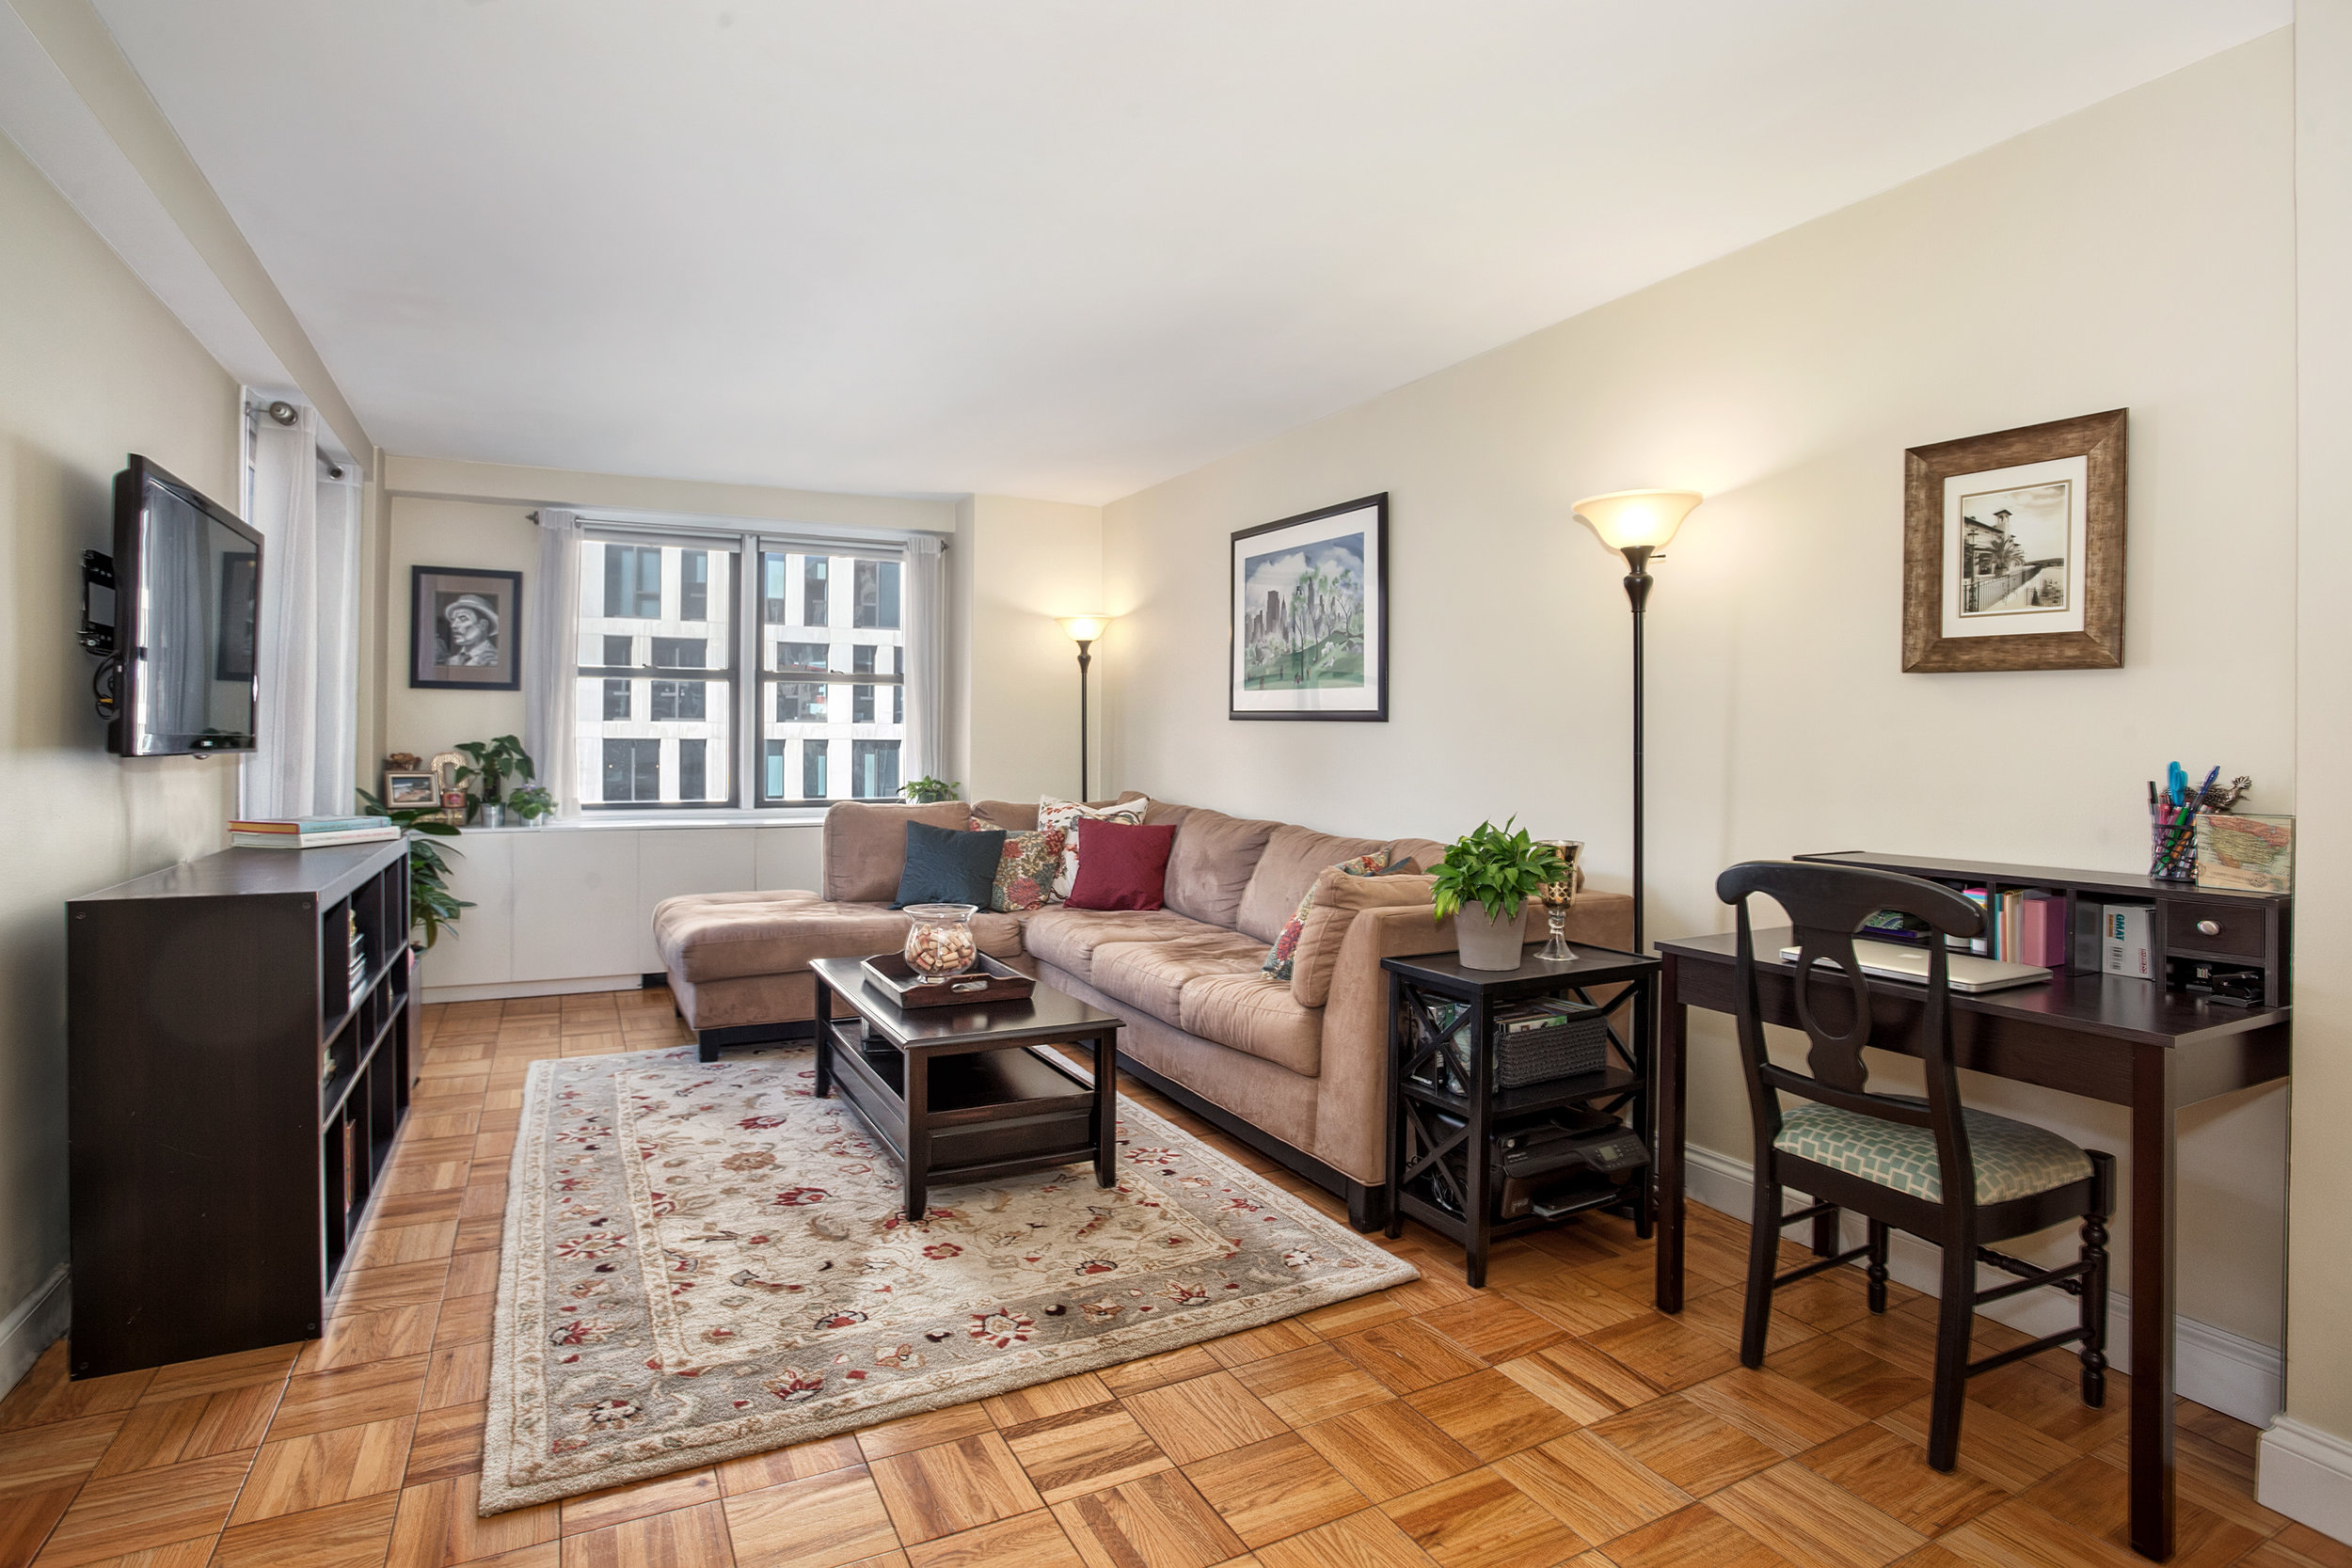 201 East 21st Street, Unit 7D - $799,000